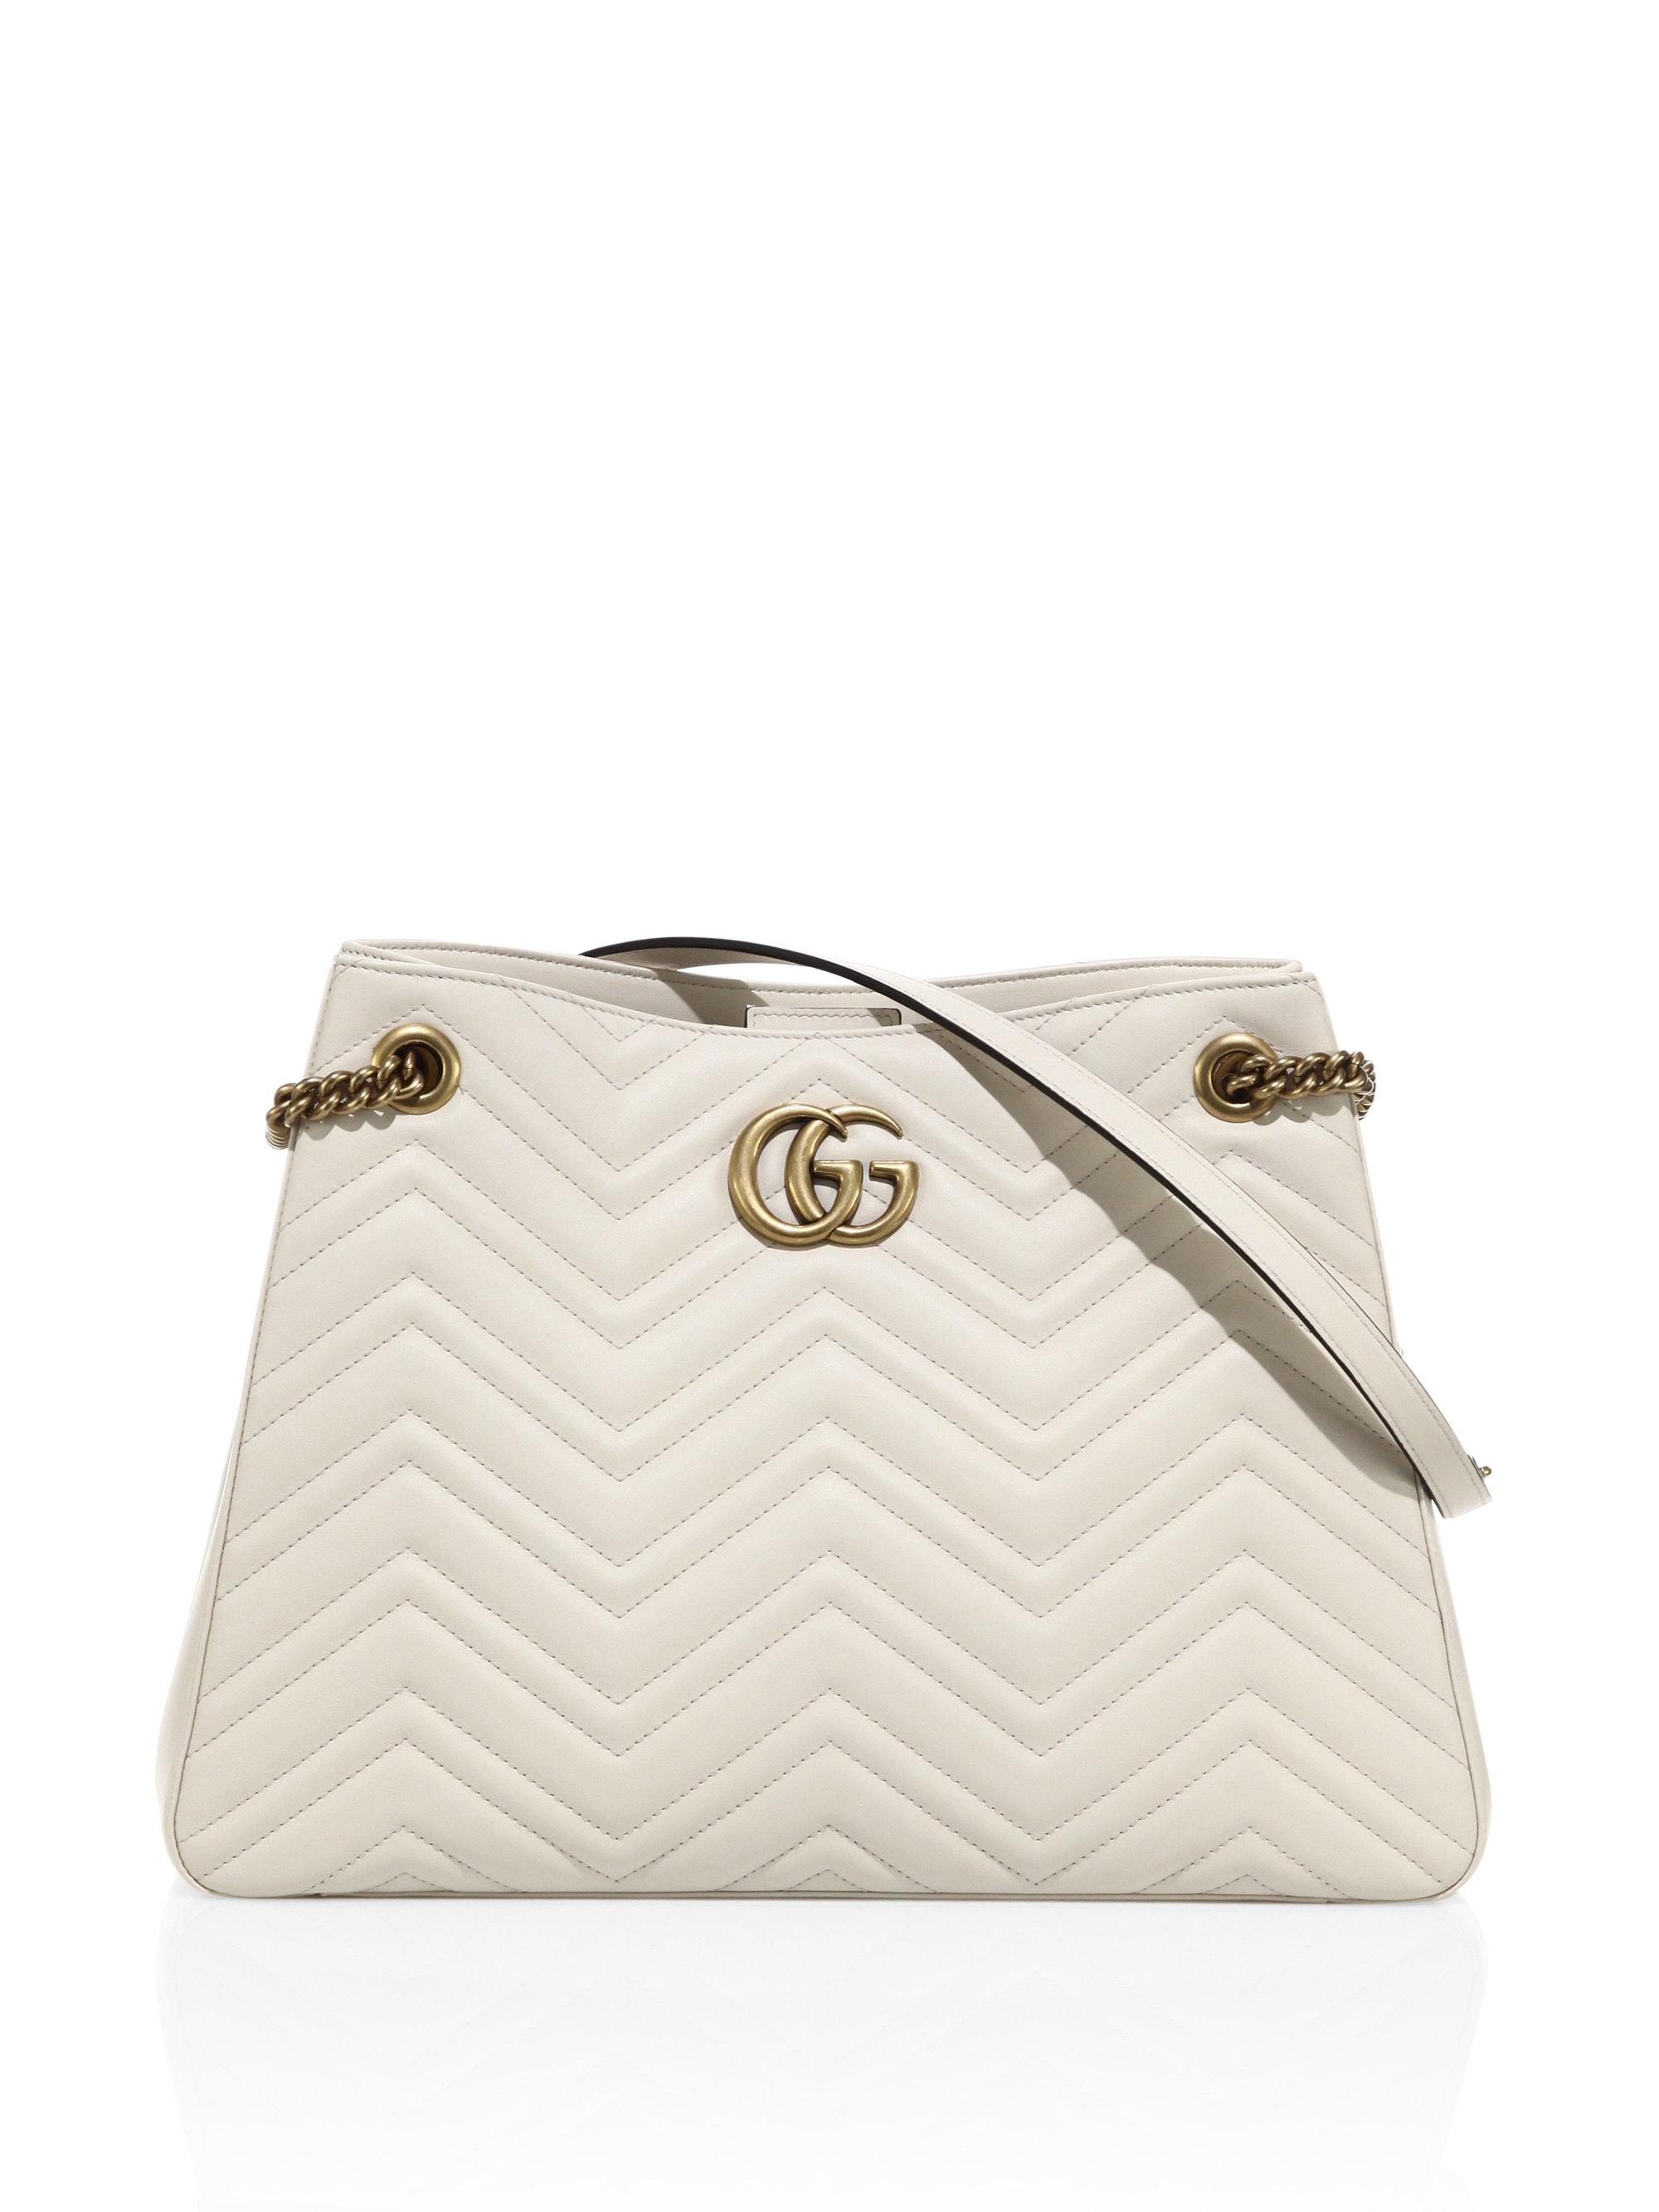 bc938730042 Lyst - Gucci Gg Marmont Matelasse Leather Shoulder Bag in White